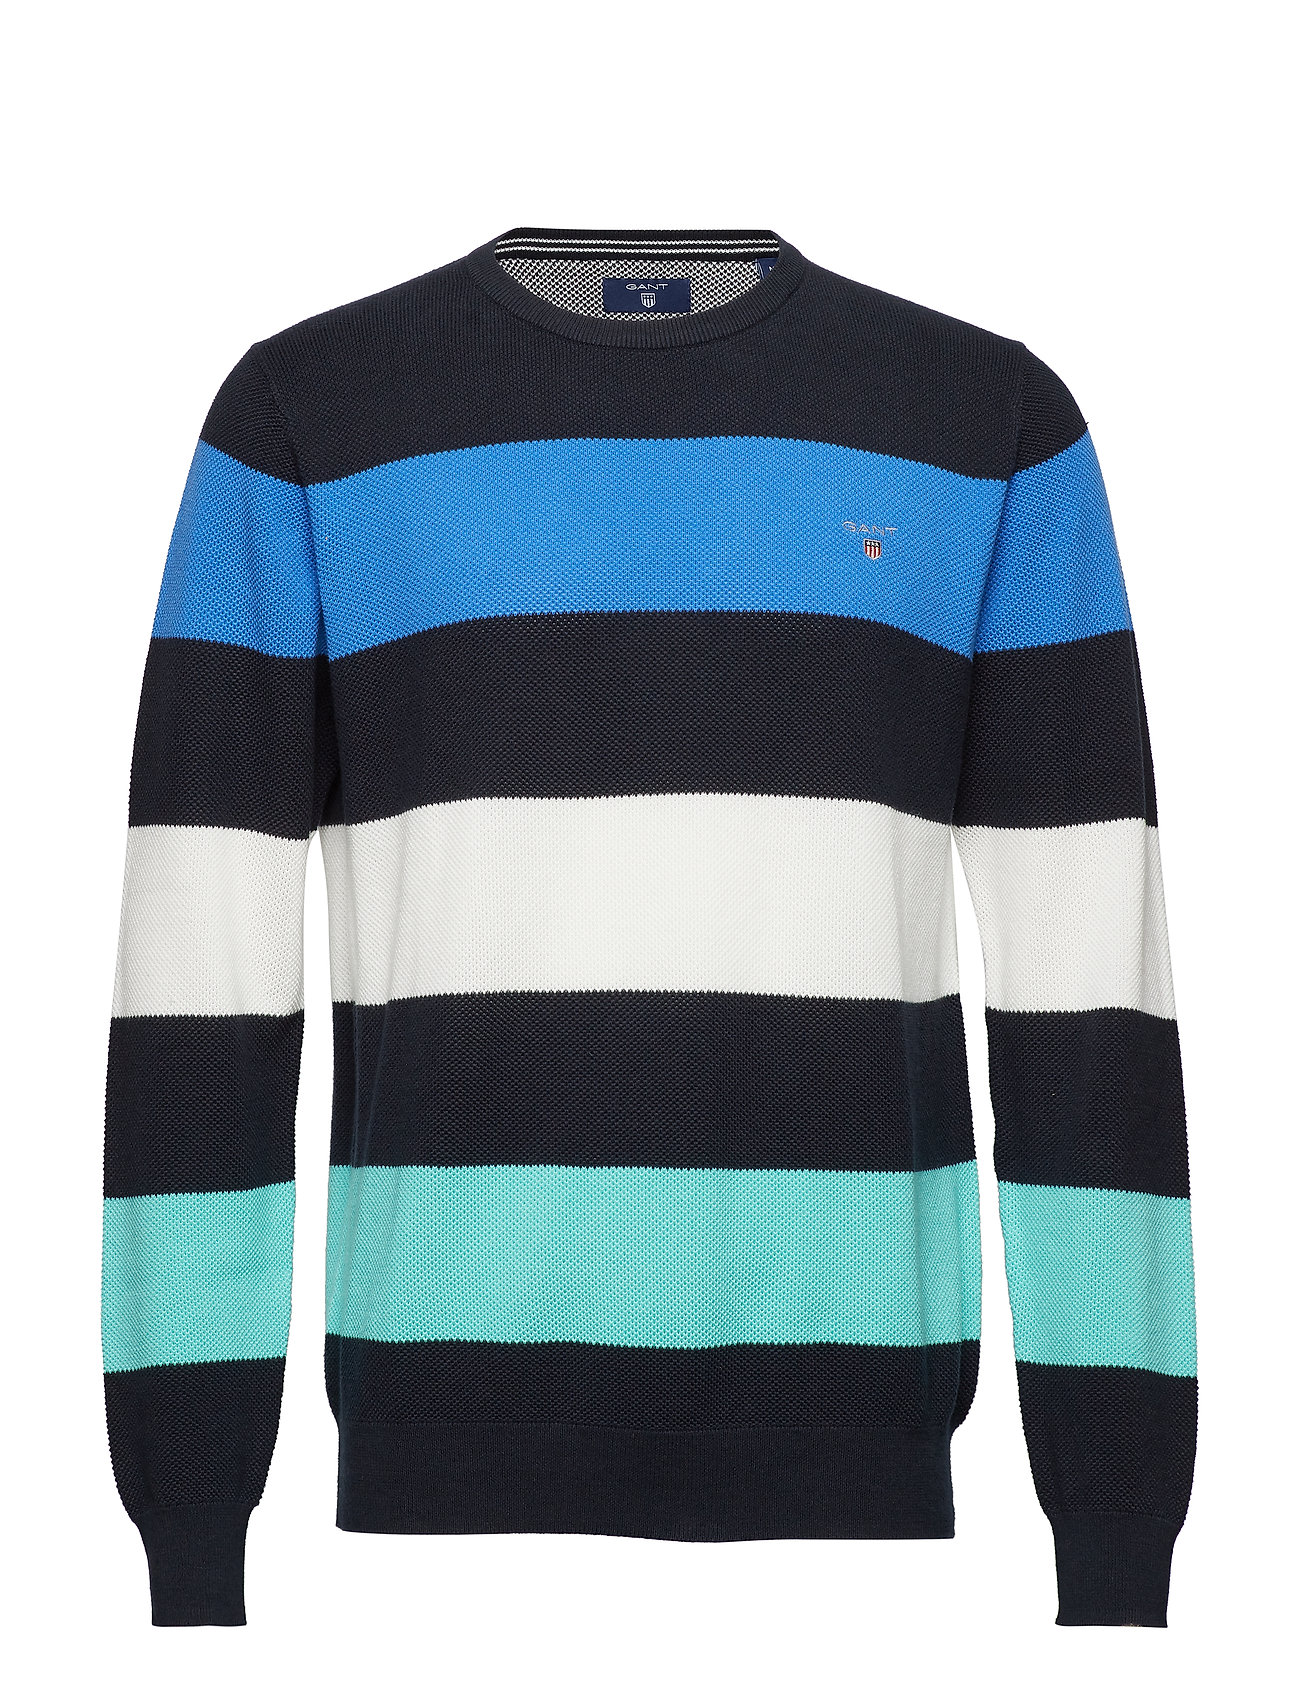 GANT COTTON PIQUE MULTISTRIPE CREW - EVENING BLUE